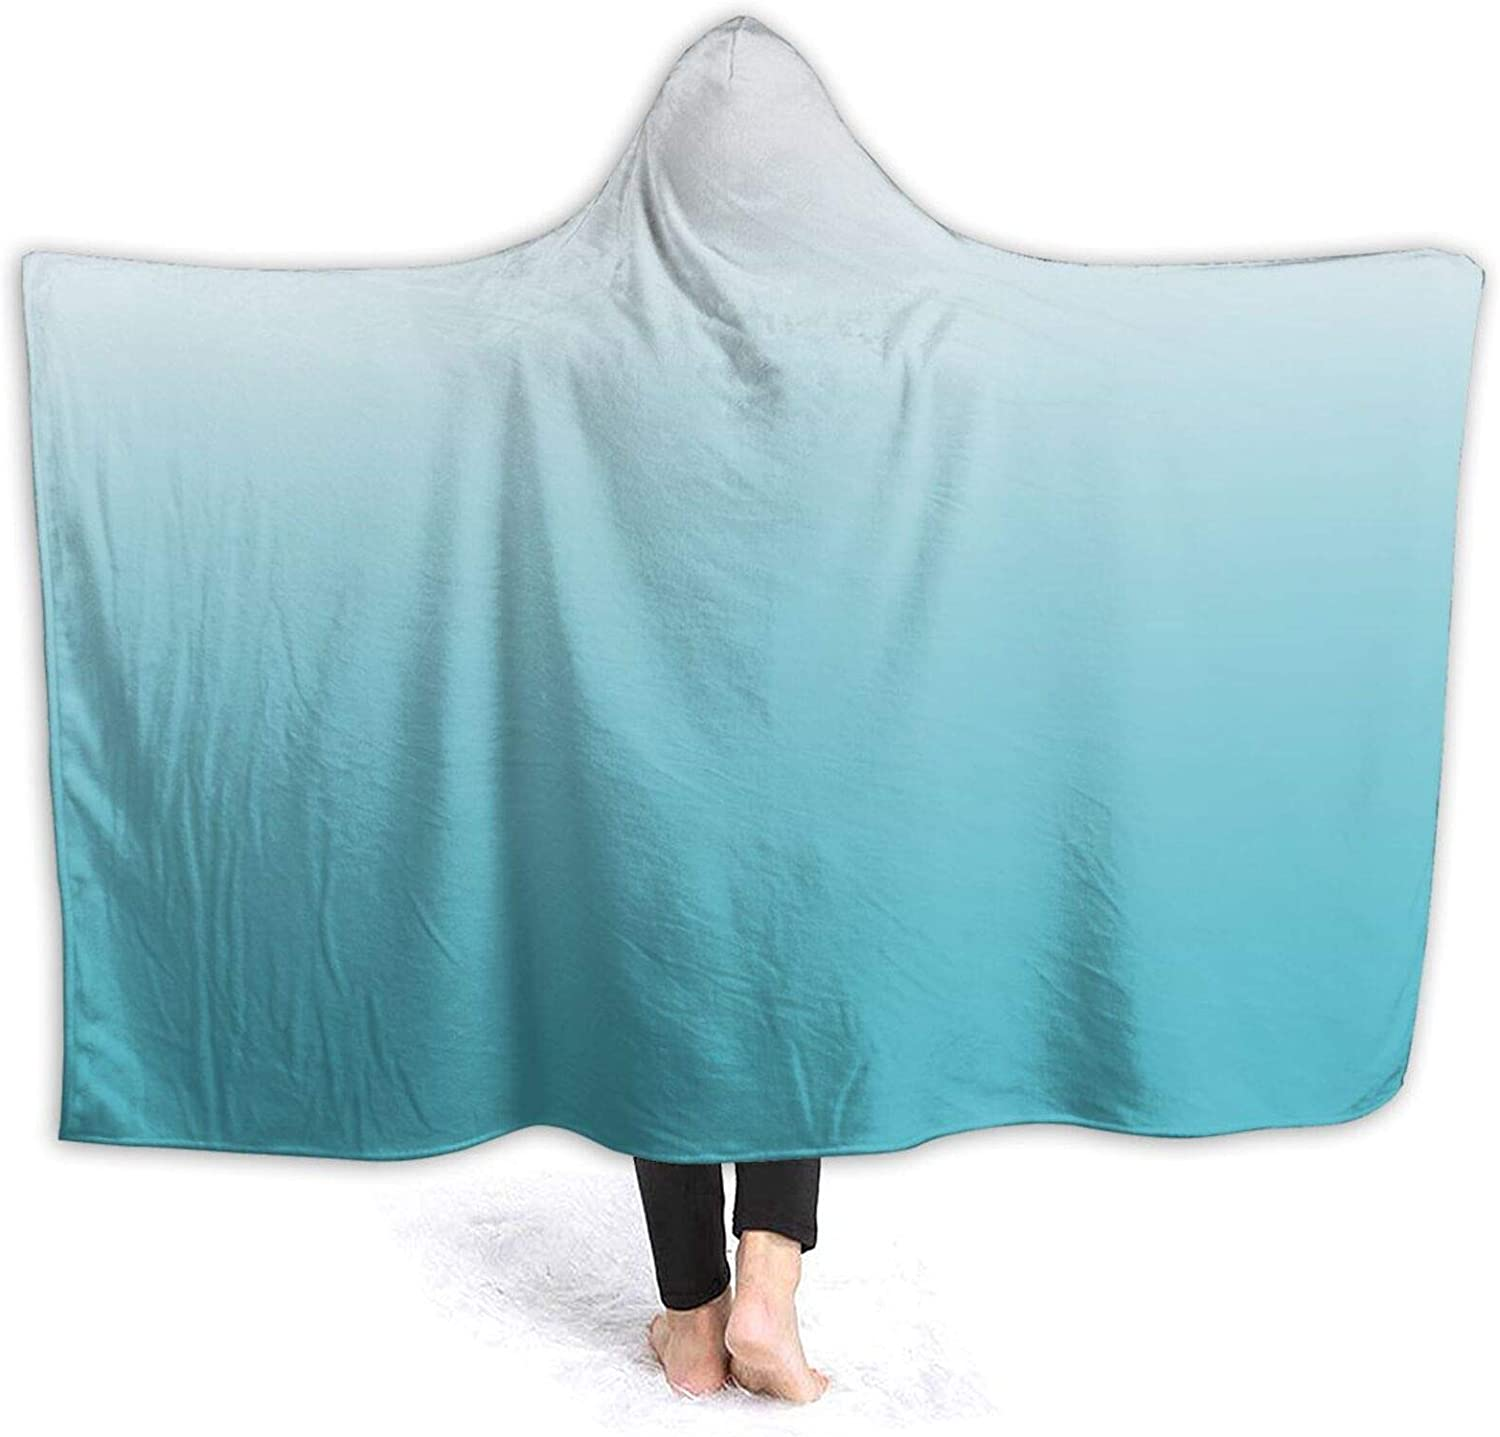 Minalo Wearable Hooded Blanket Plush price Bl Indefinitely Wrap Gradient Watercolor